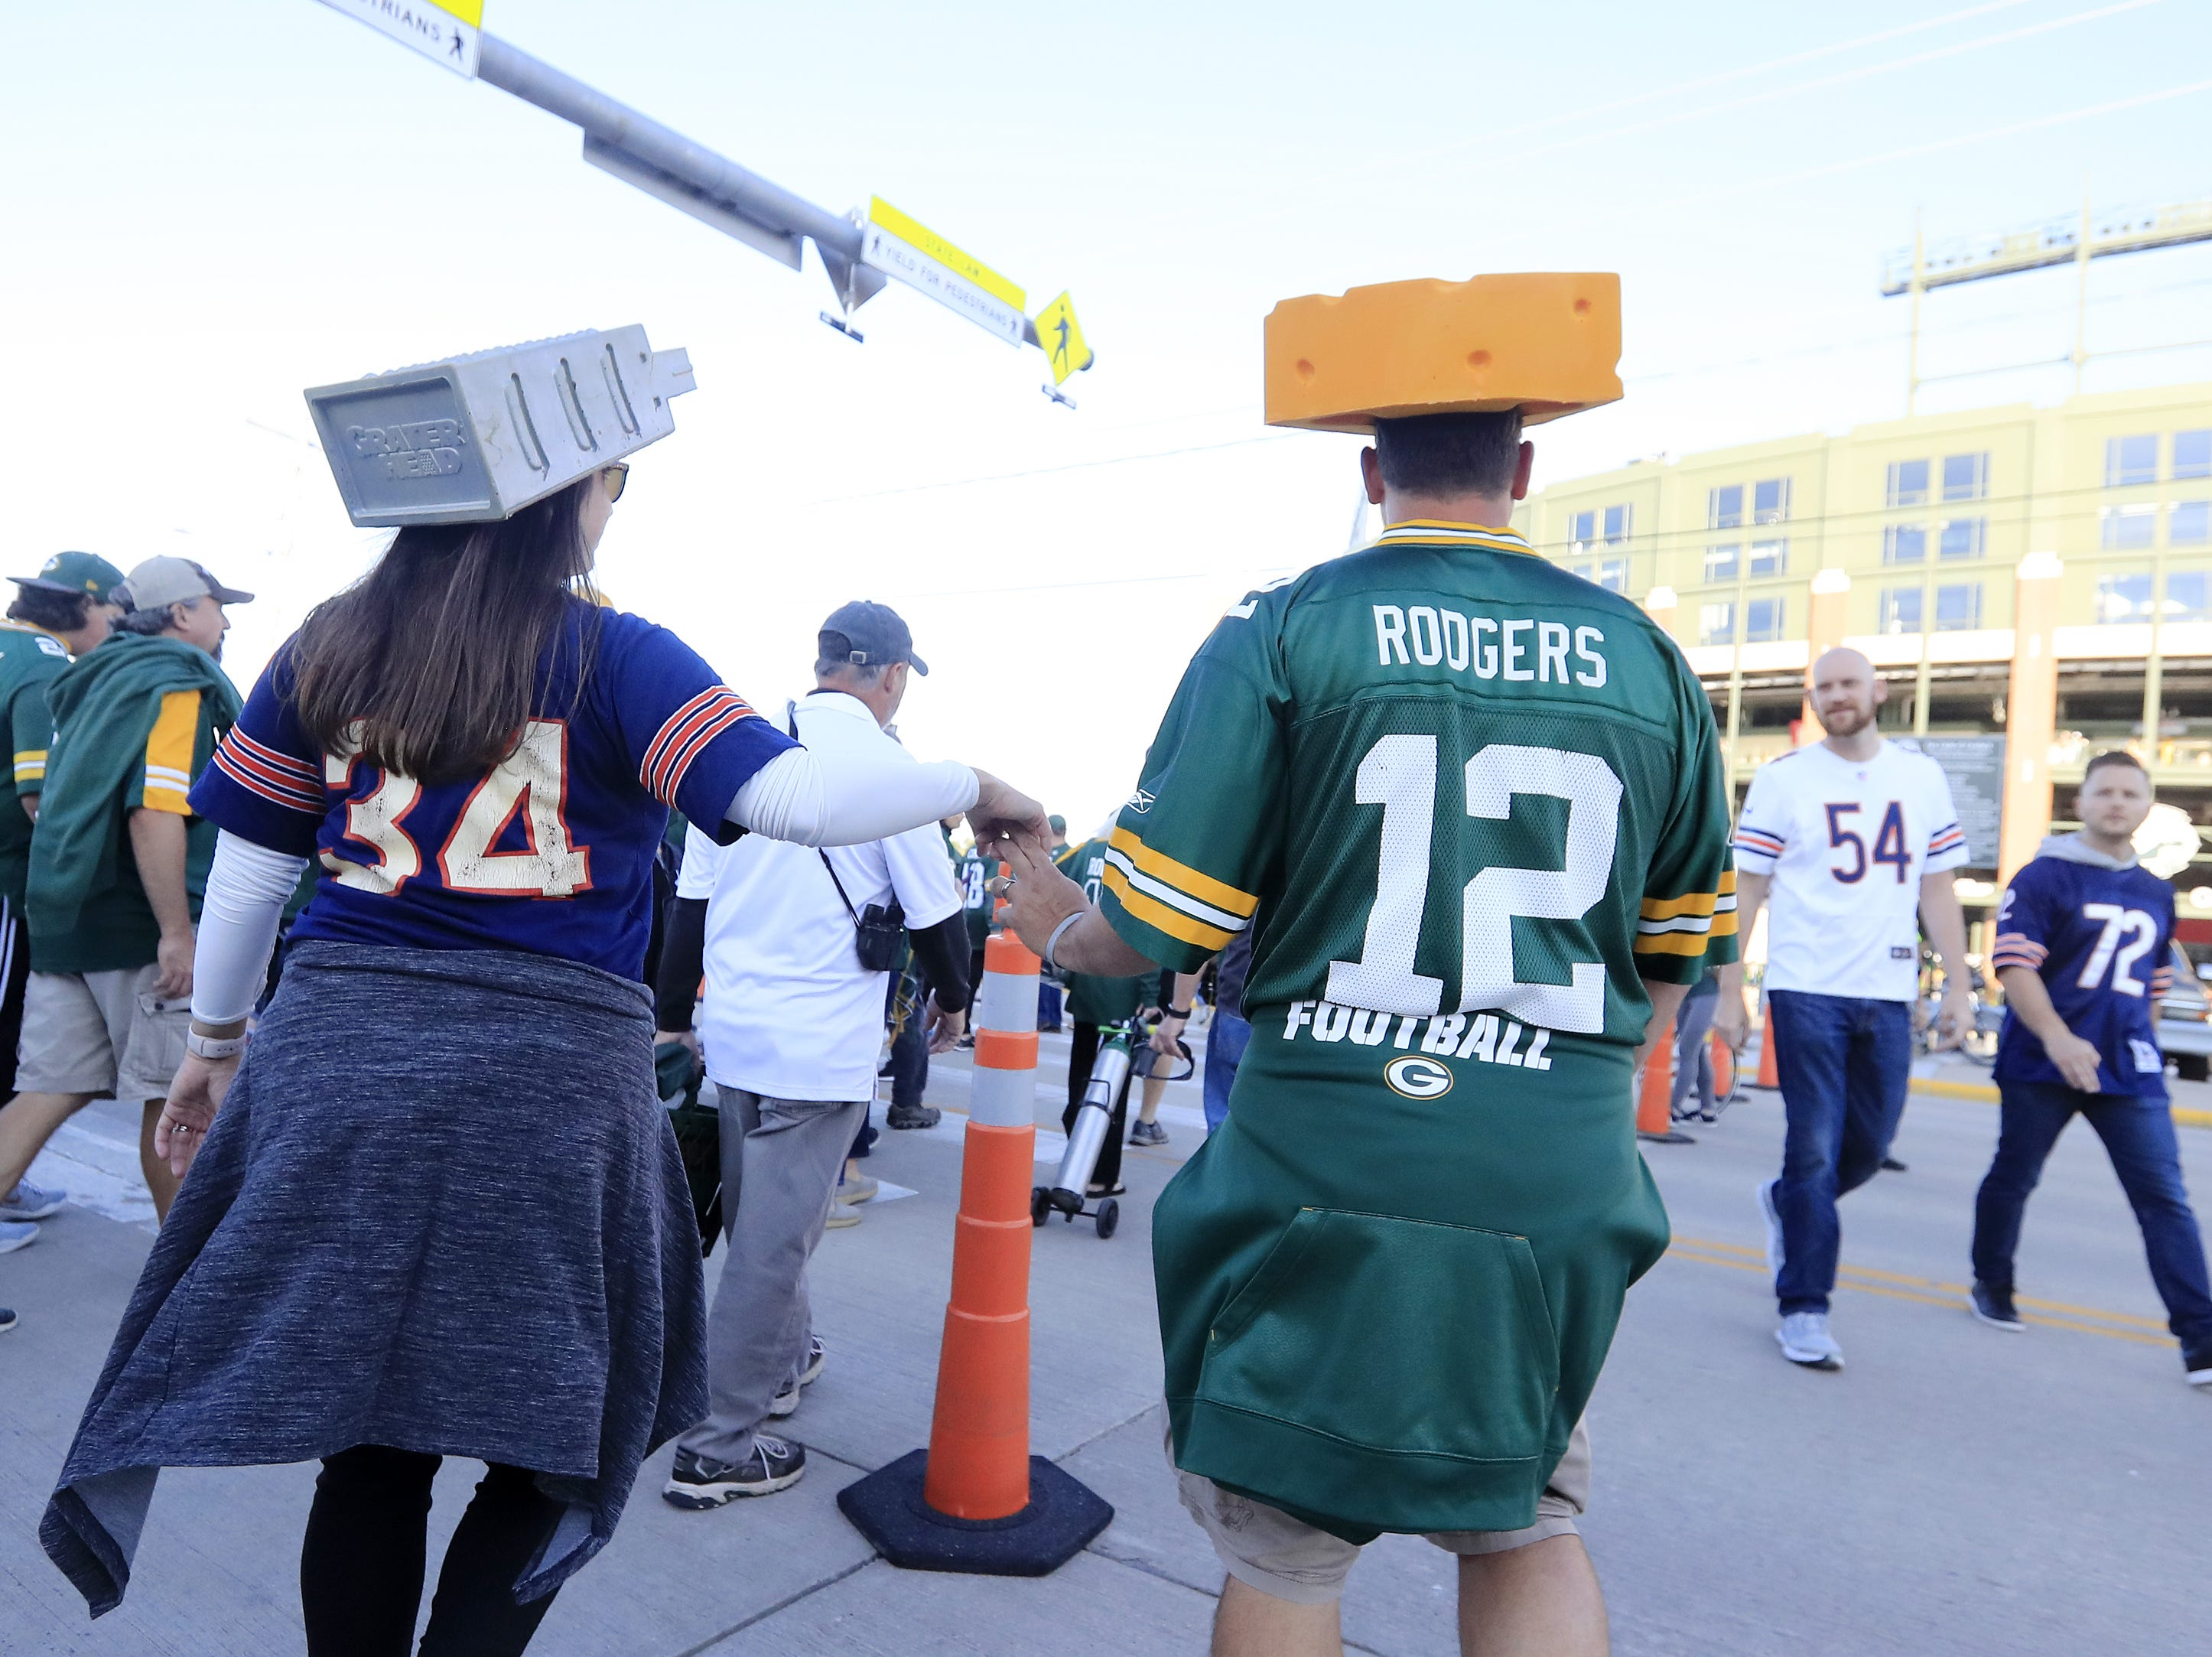 Fans arrive for Packers vs Bears at Lambeau Field on Sunday, September 9, 2018 in Green Bay, Wis.